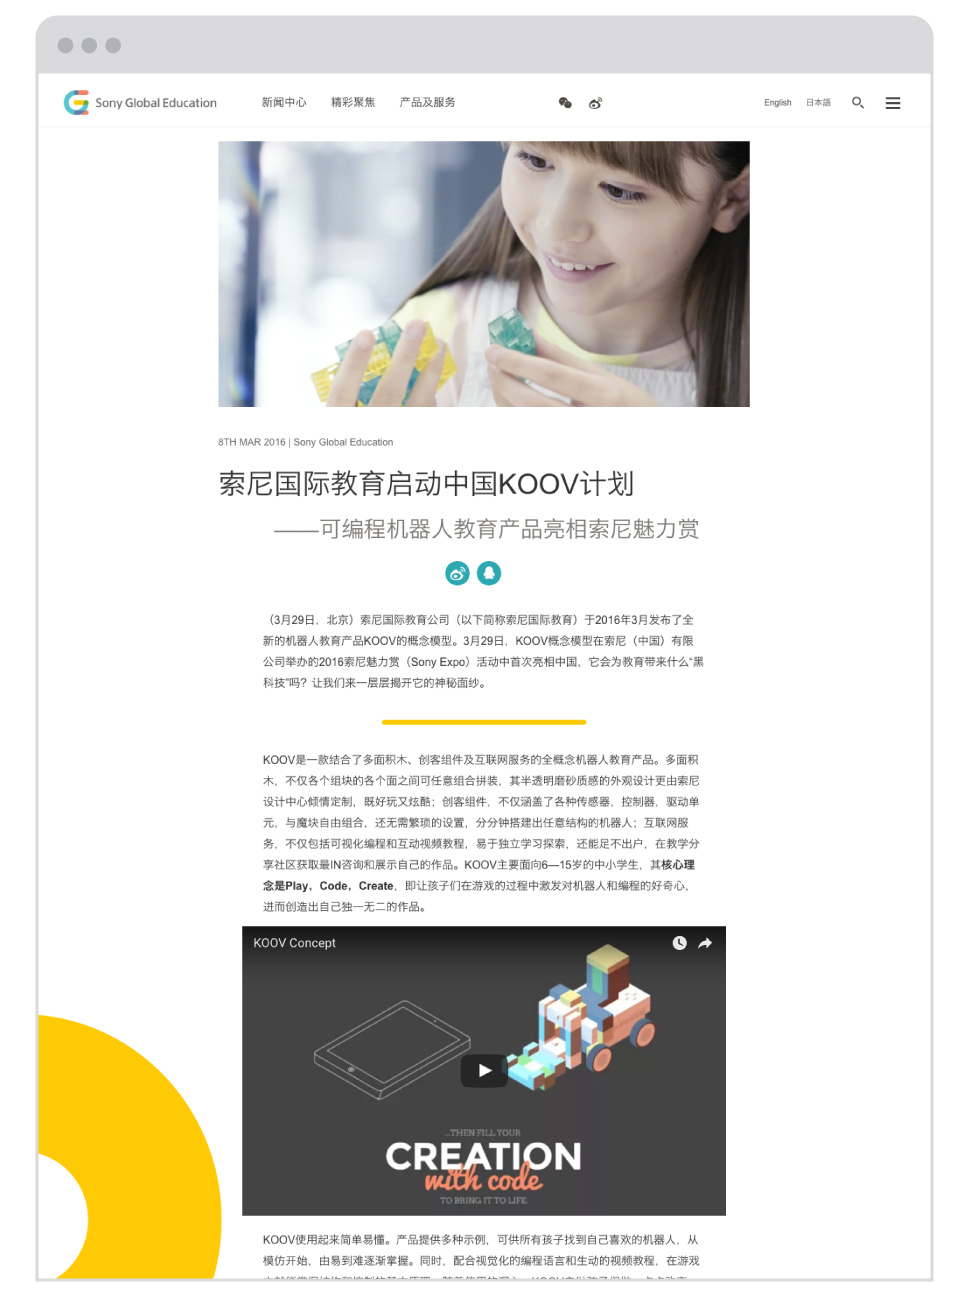 Sony Global Education - Sony Global Education - Japanese Article Page